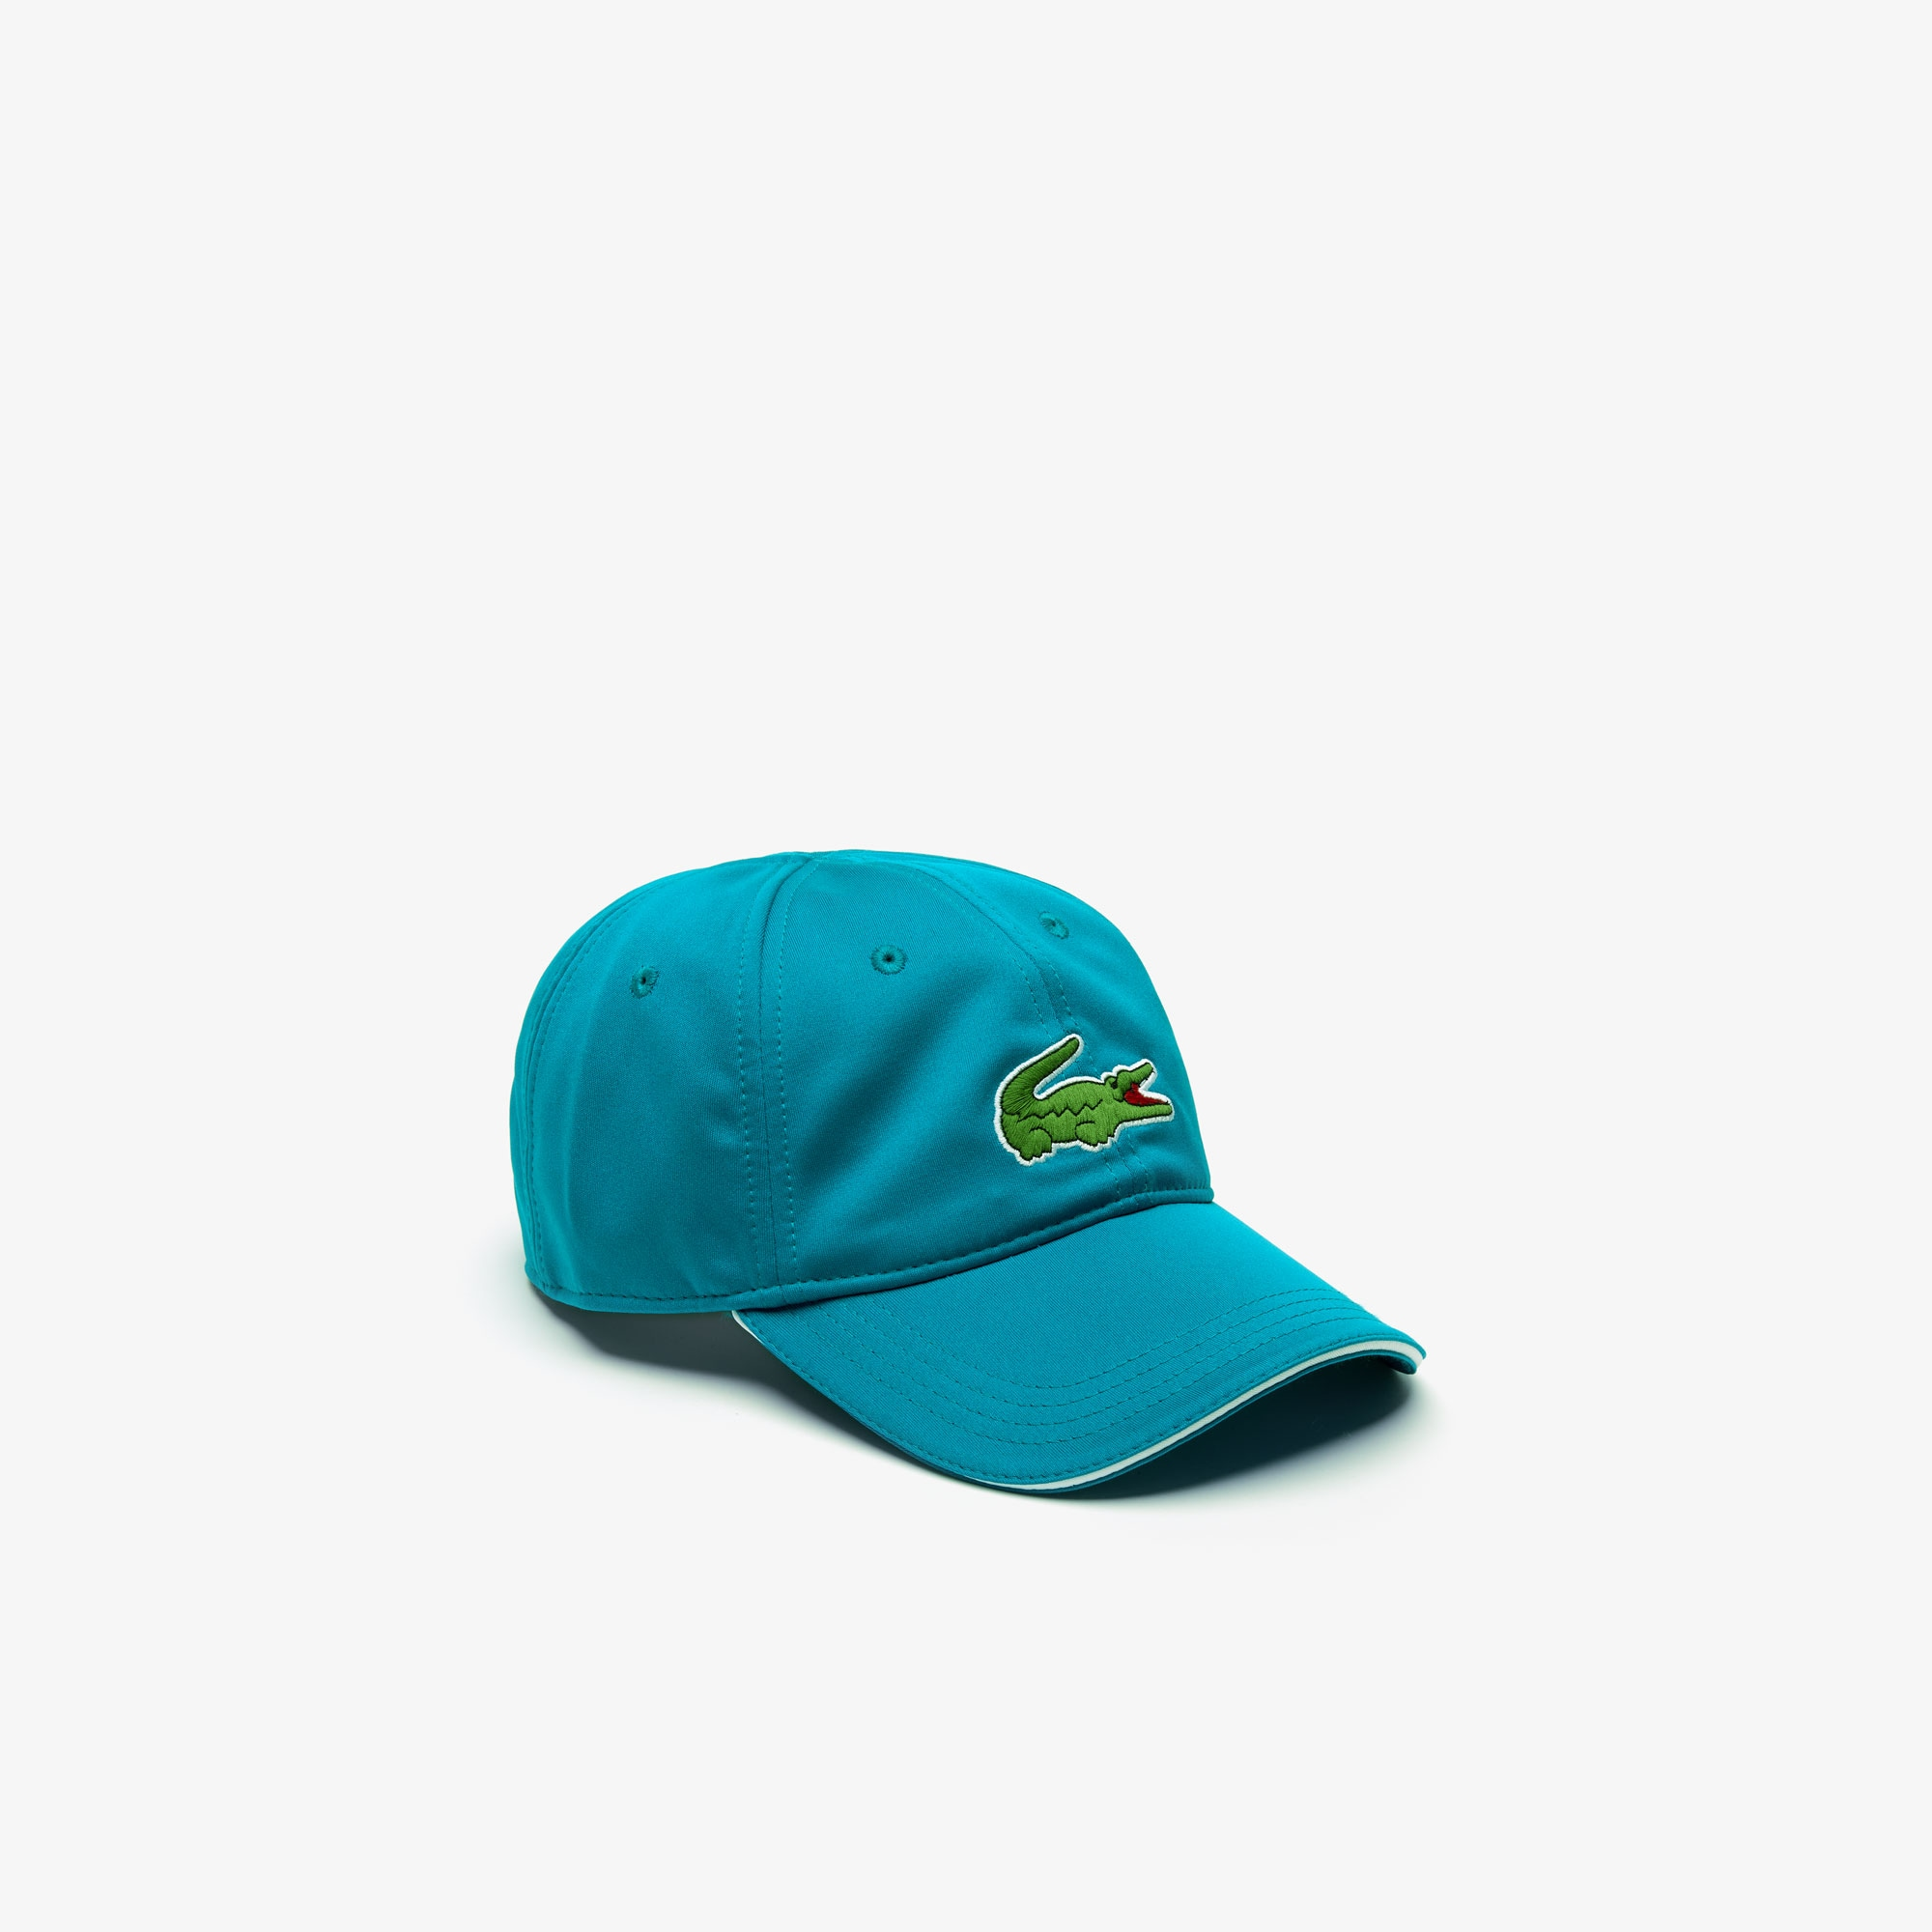 Miami Open Collection 88f586befba